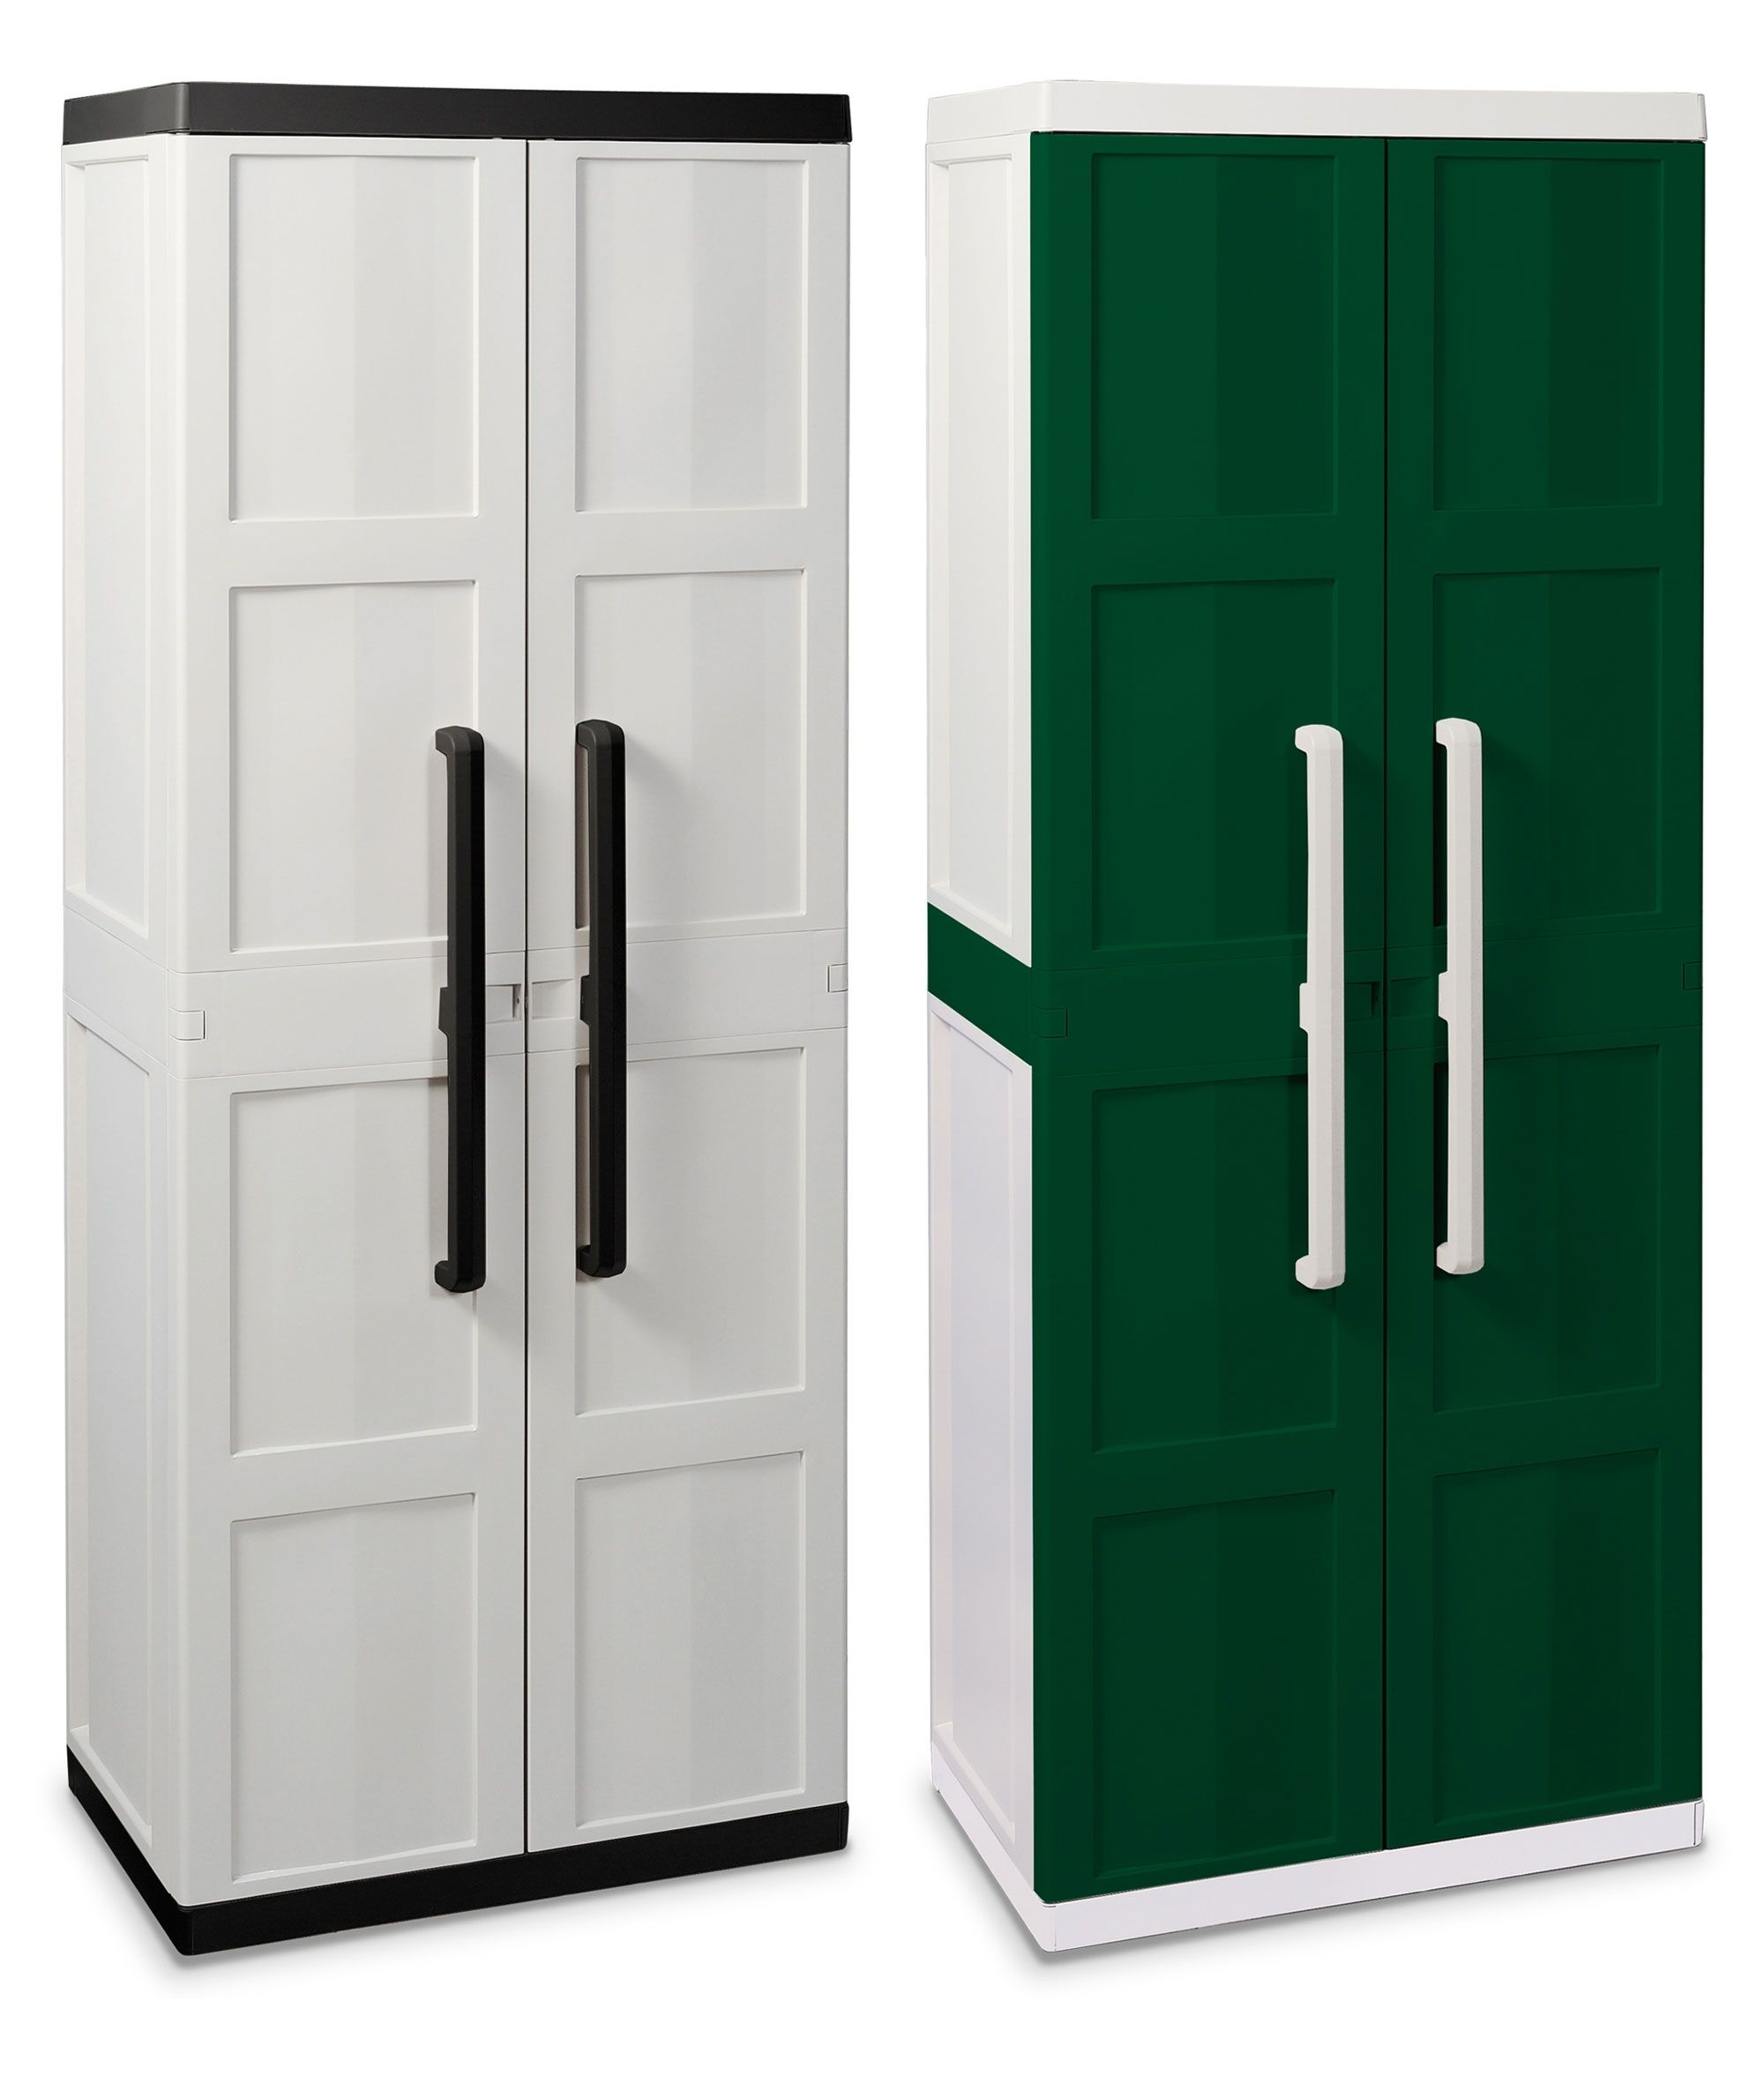 industrial storage cabinet with doors. Simple Doors Industrial Indoor Storage Cabinets With Doors On Cabinet